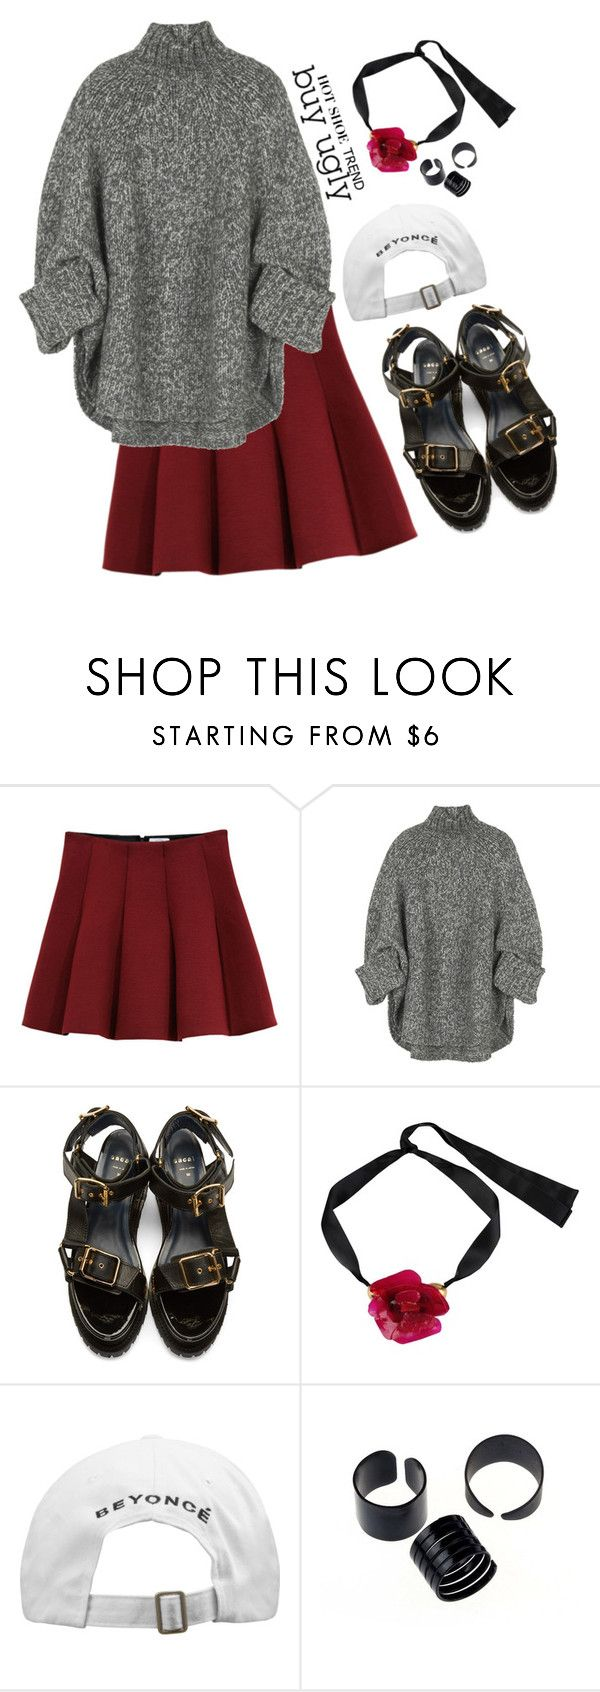 """beauty isn't conditional"" by diamond-ivys ❤ liked on Polyvore featuring Outstanding Ordinary, Michael Kors, Sacai, Marni, contest, contestentry and uglyshoes"